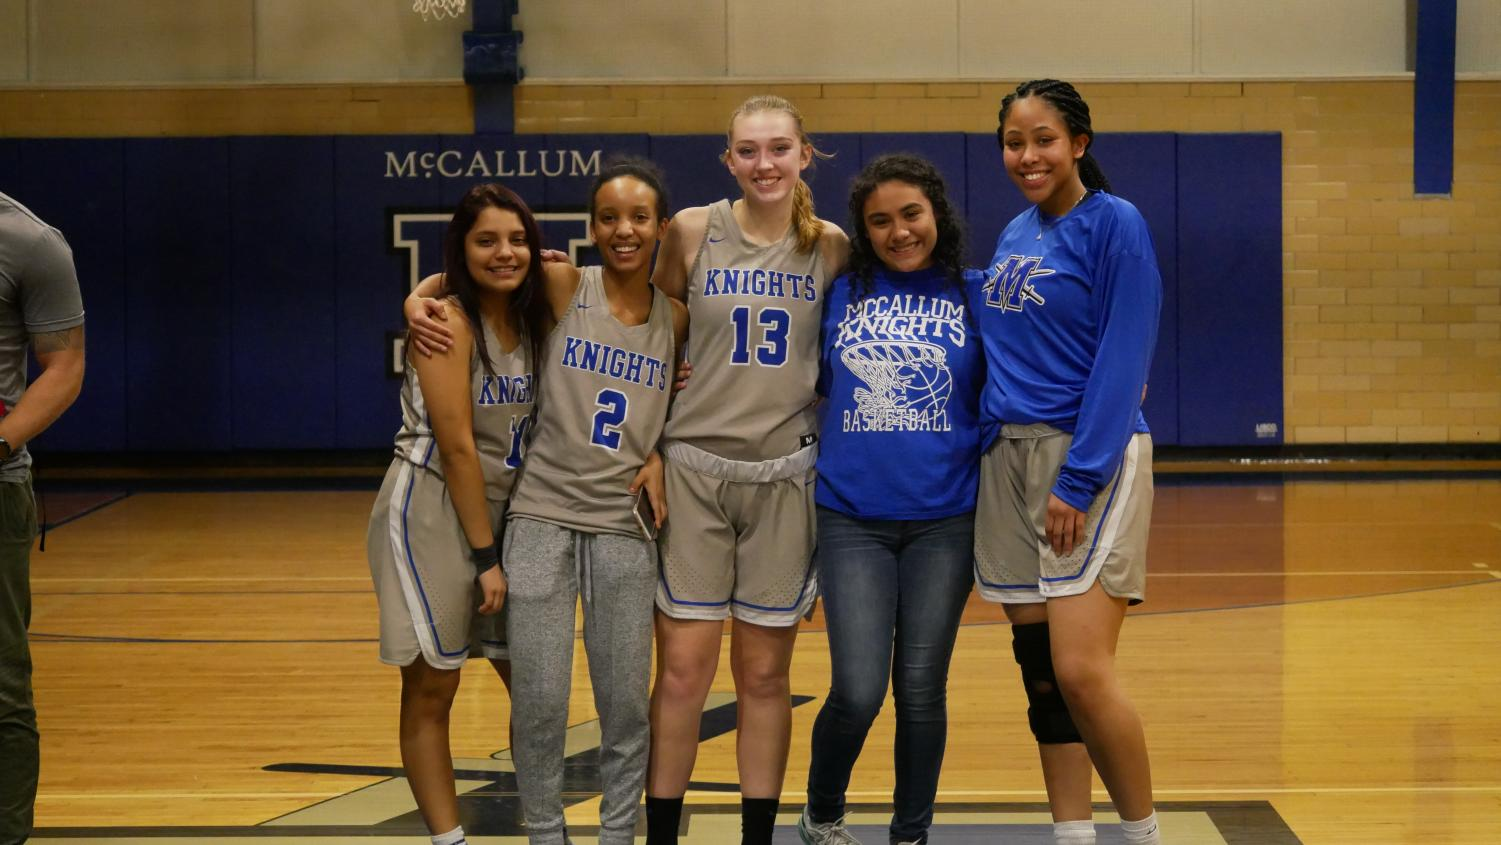 Maddy poses with the other varsity seniors on Senior Night against Lanier in the Don Caldwell Gymnasium on Feb. 5. Photo by Selena De Jesus.